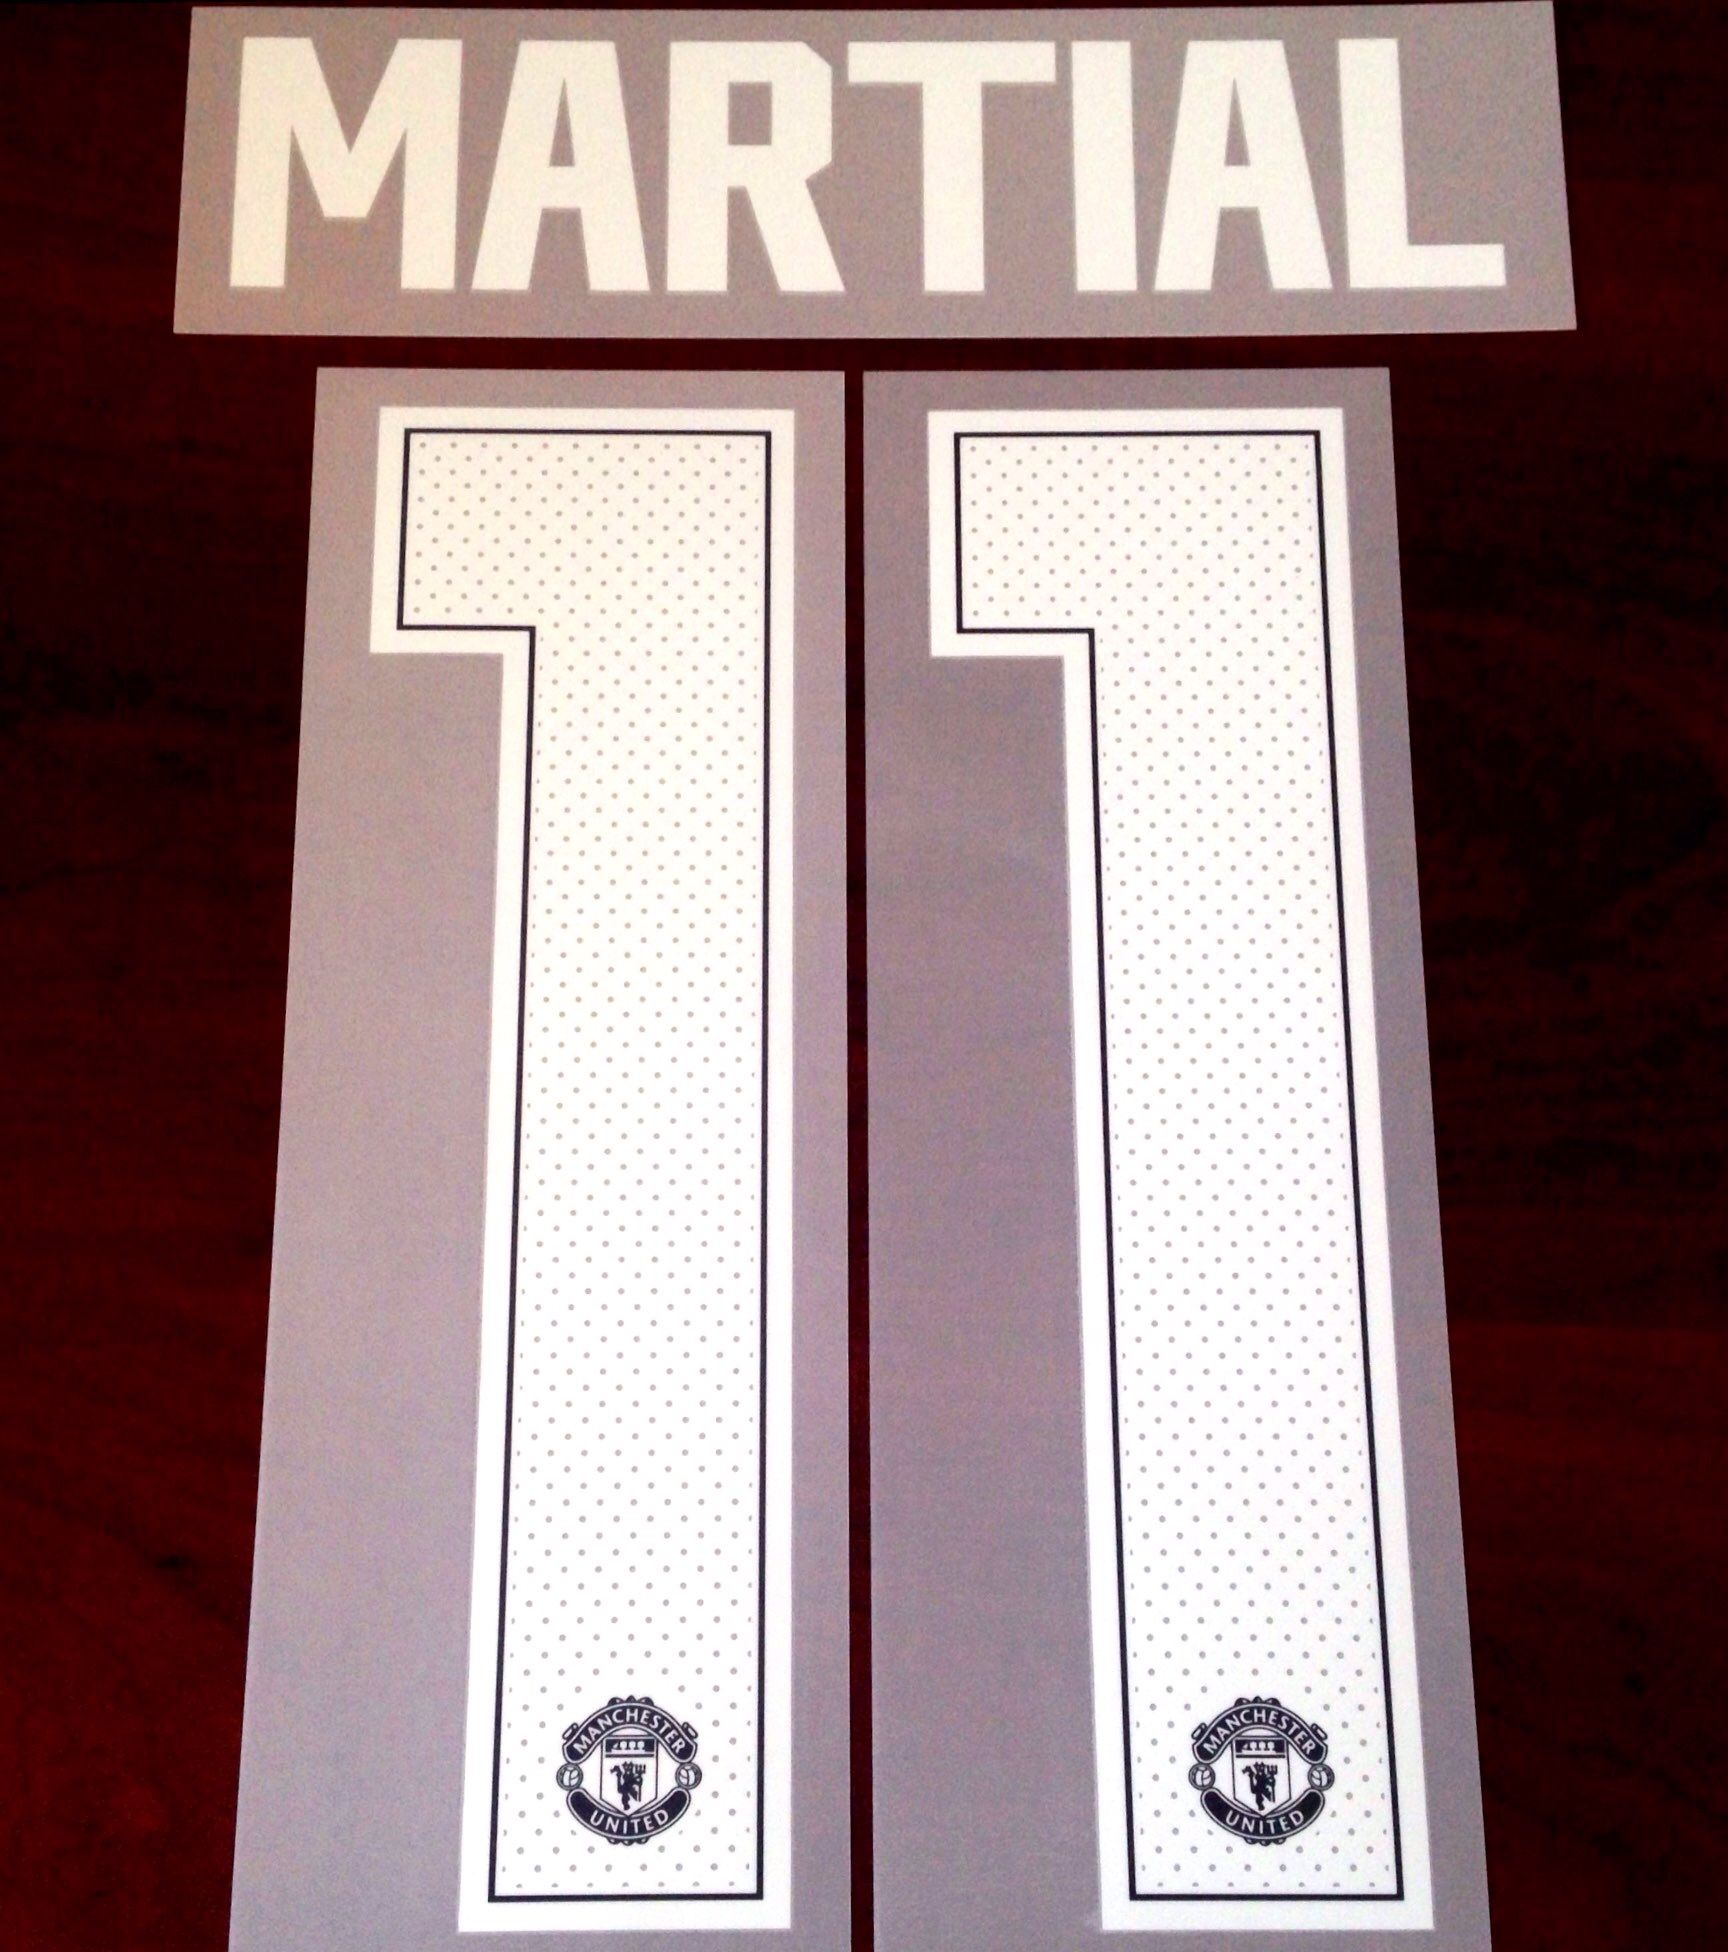 low priced 34f25 cfa62 2018-19 Manchester Utd UCL & FA CUP Home Shirt MARTIAL#11 Official Player  Issue Size Name Number Set